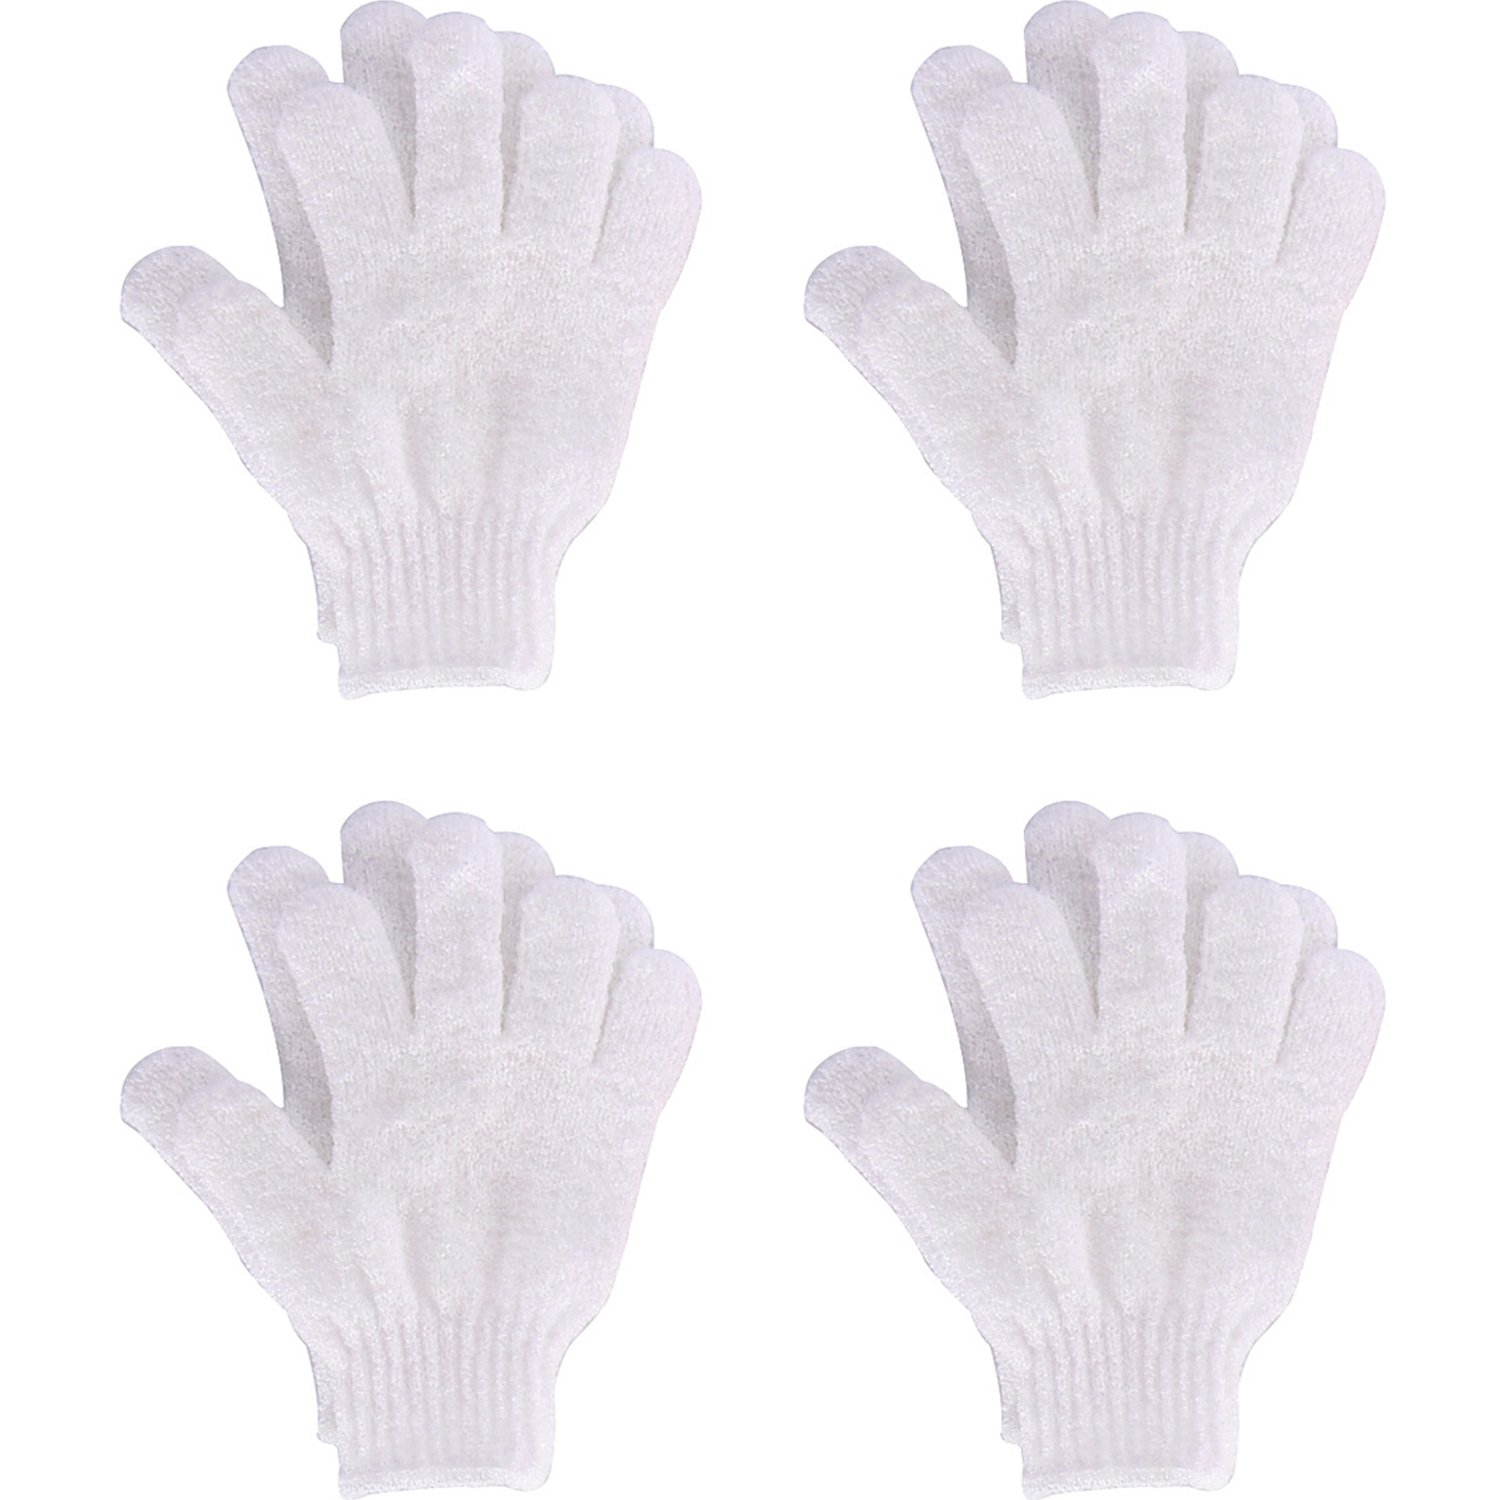 4 Pairs Shower Gloves Scrubbing Gloves Dual-sided Exfoliating Glove Body Bath Scrubs, White Hotop